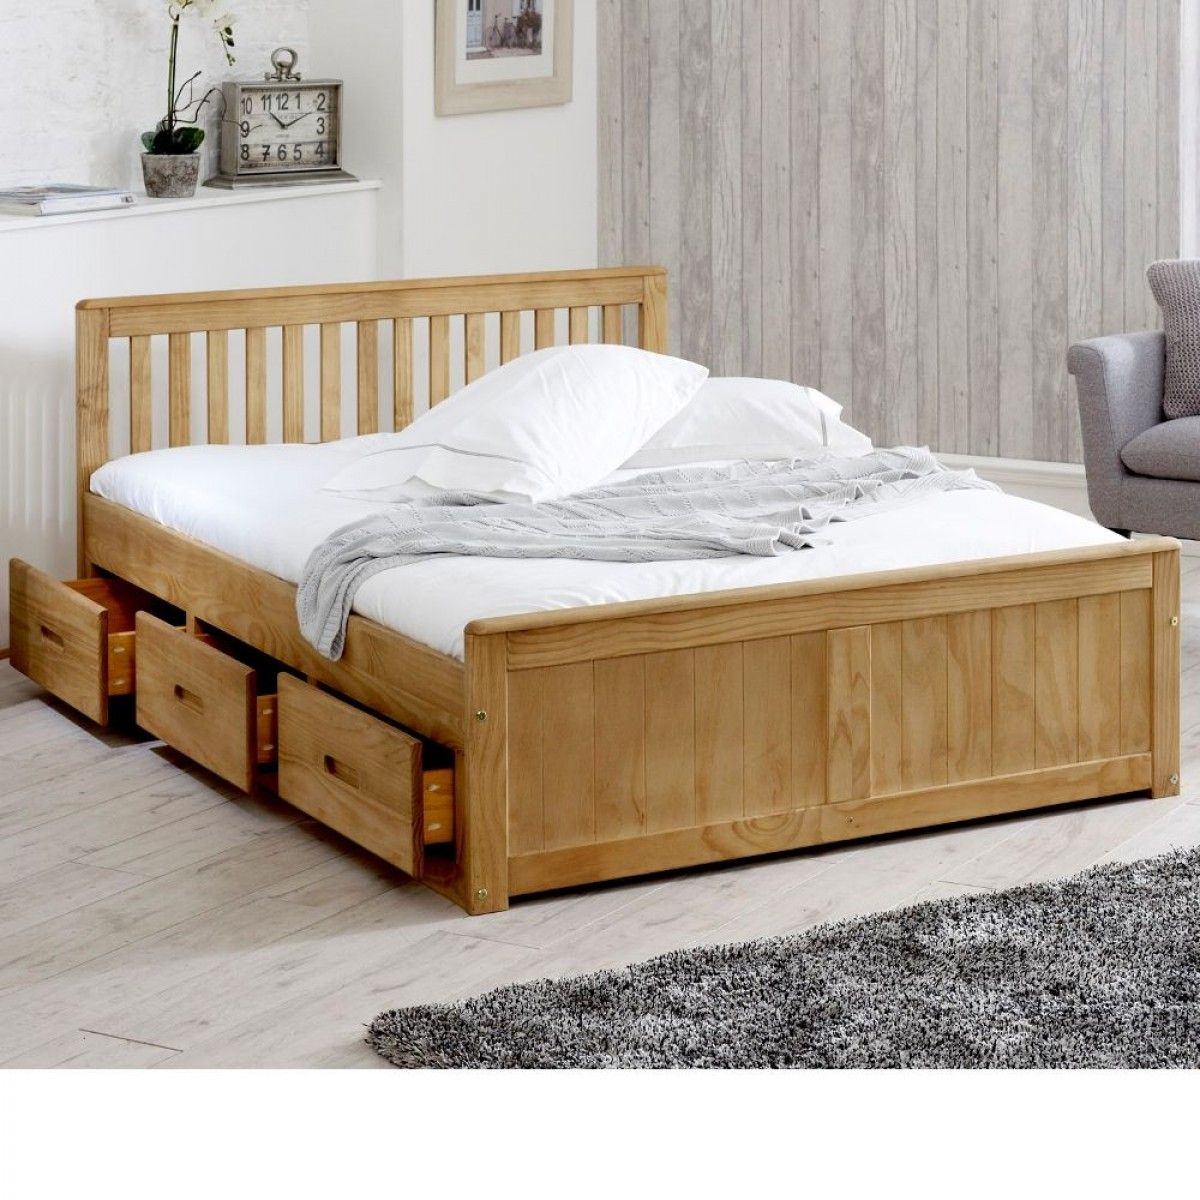 Mission Waxed Pine Wooden Storage Bed Wooden Bed With Storage